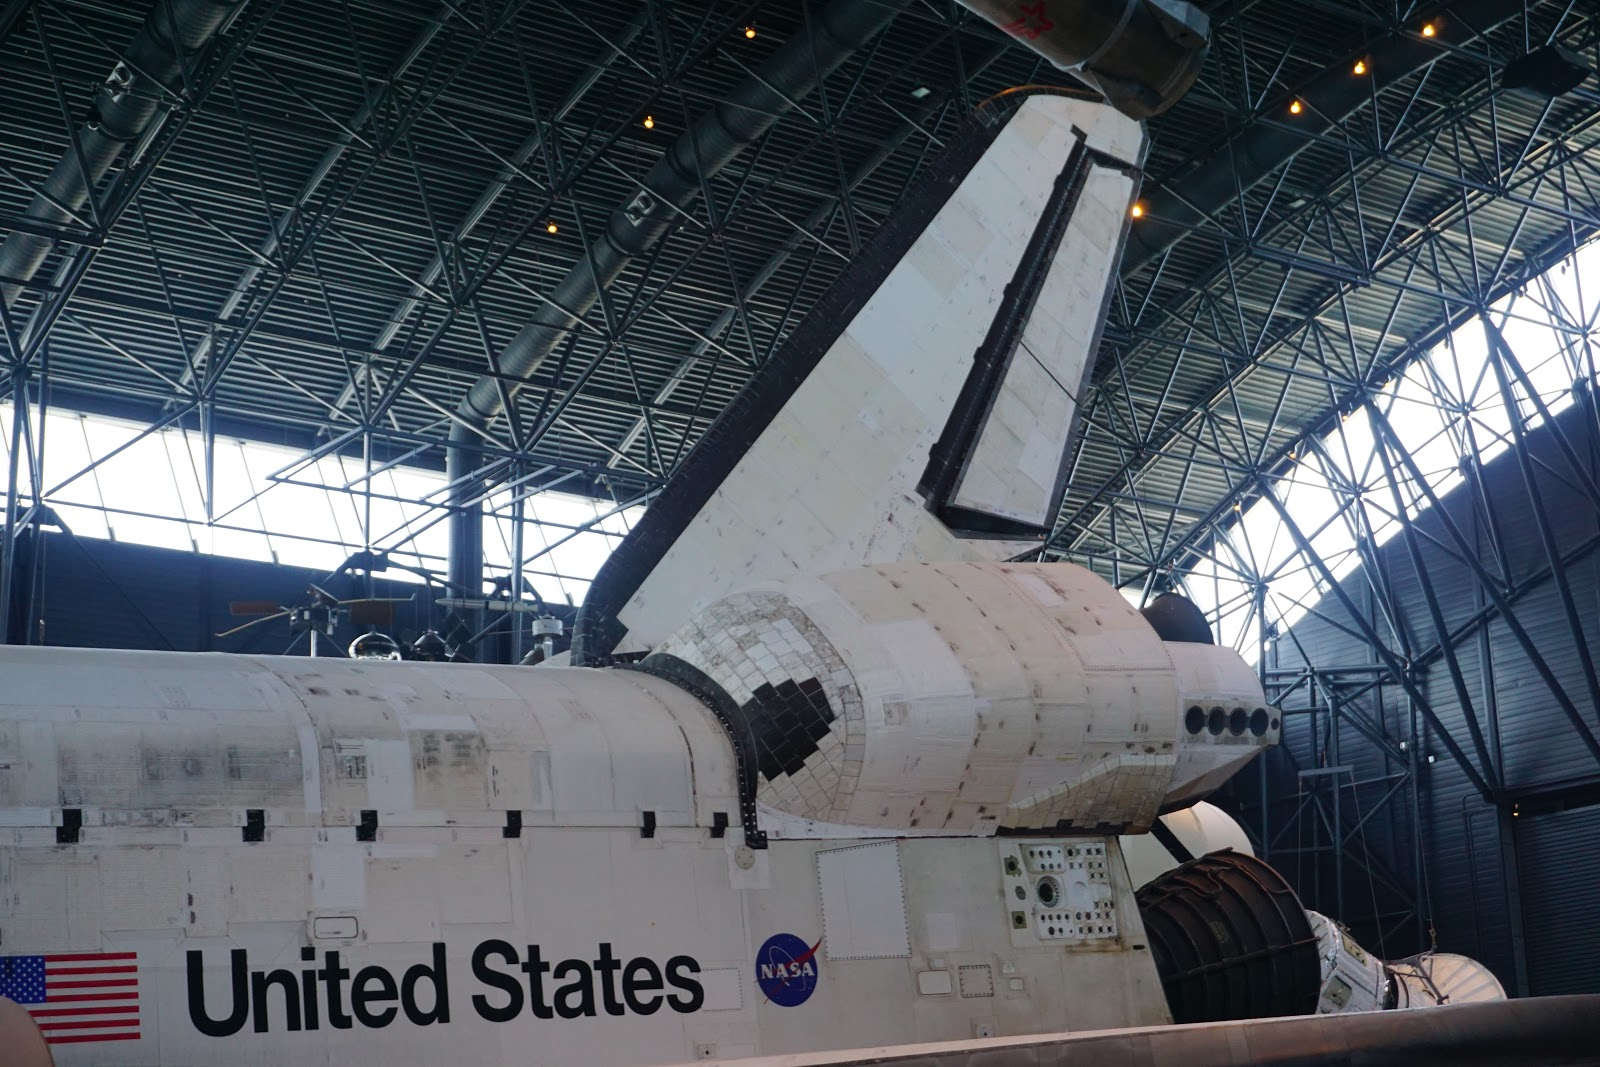 space shuttle discovery hazy - photo #4